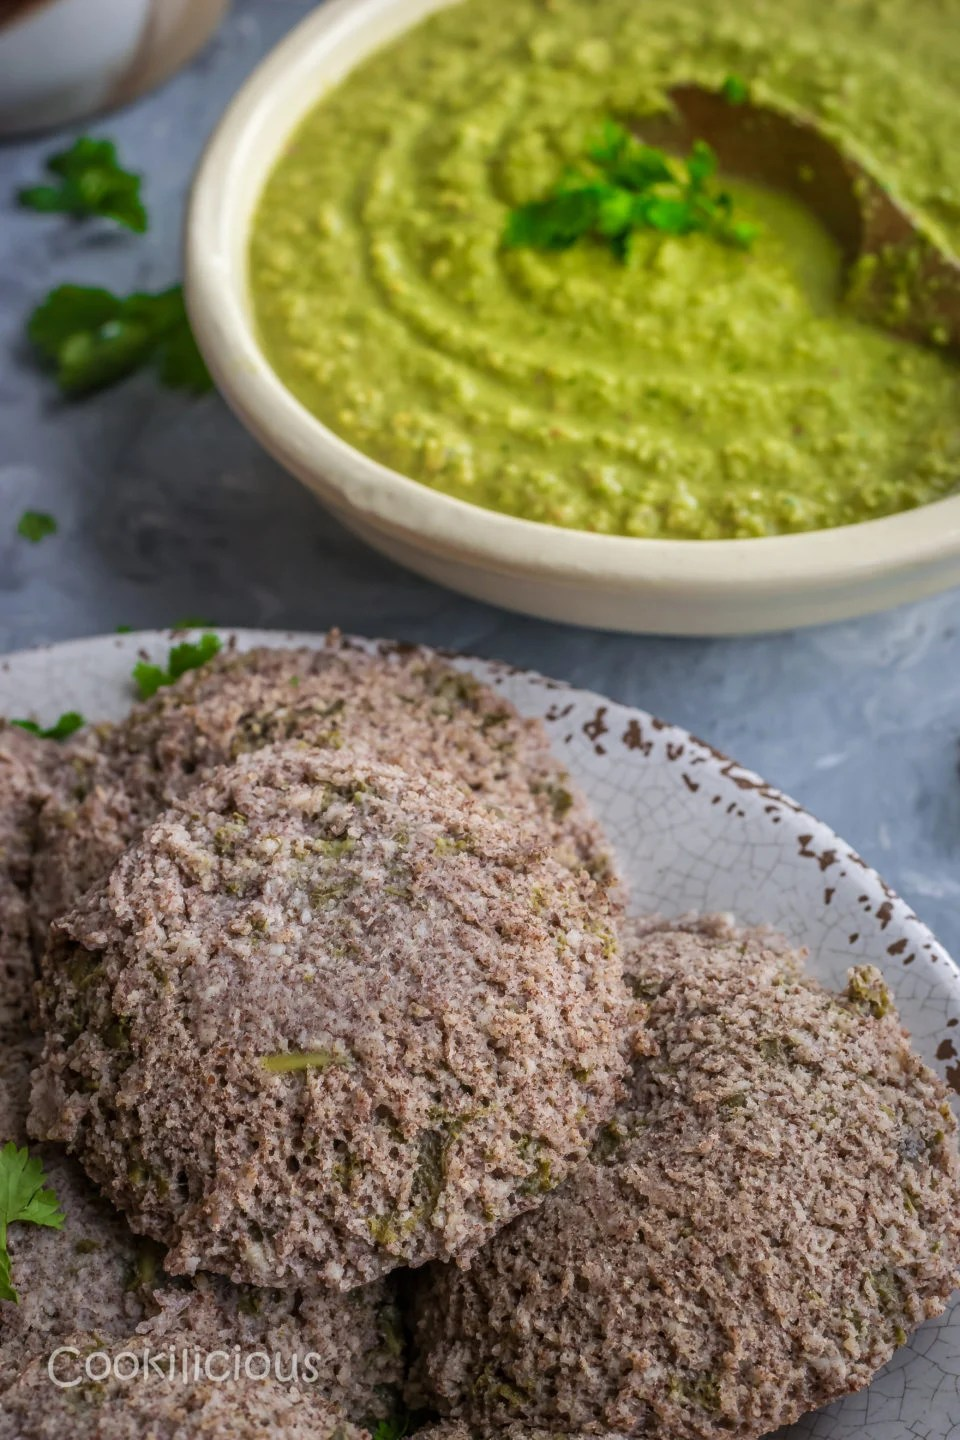 close up to one Ragi & Kale Idli in a plate among others